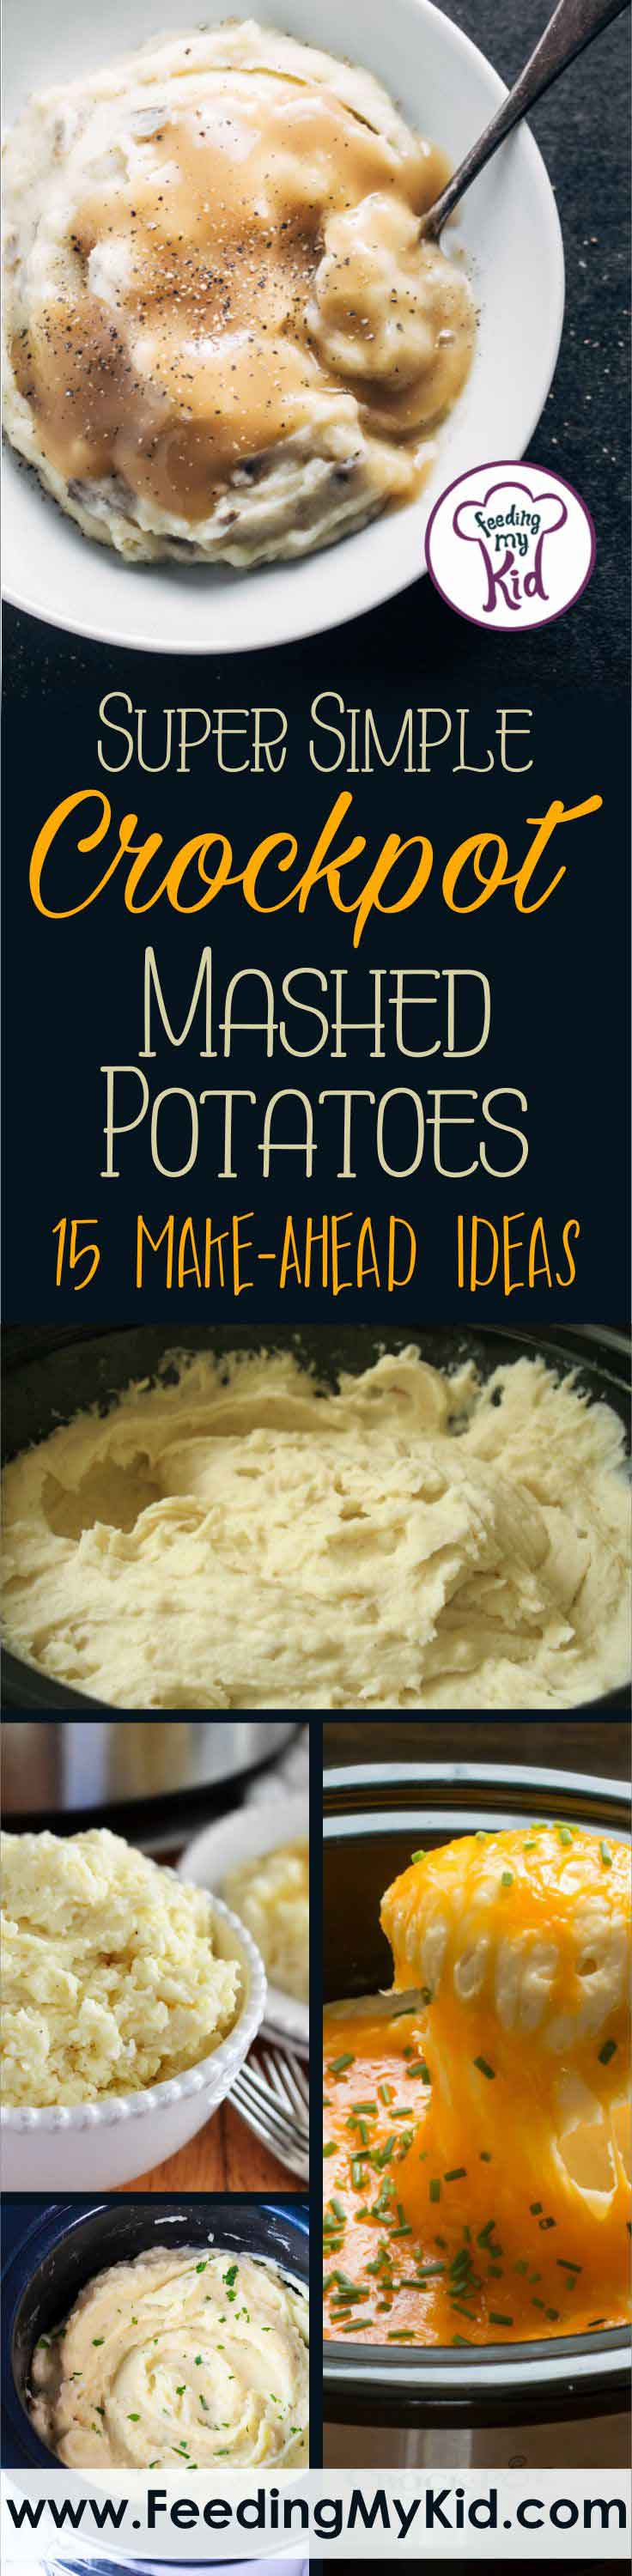 These crock pot mashed potatoes are so easy! Peel, place, and cook in the morning; they'll be ready by dinner time. Gotta love a crock pot!